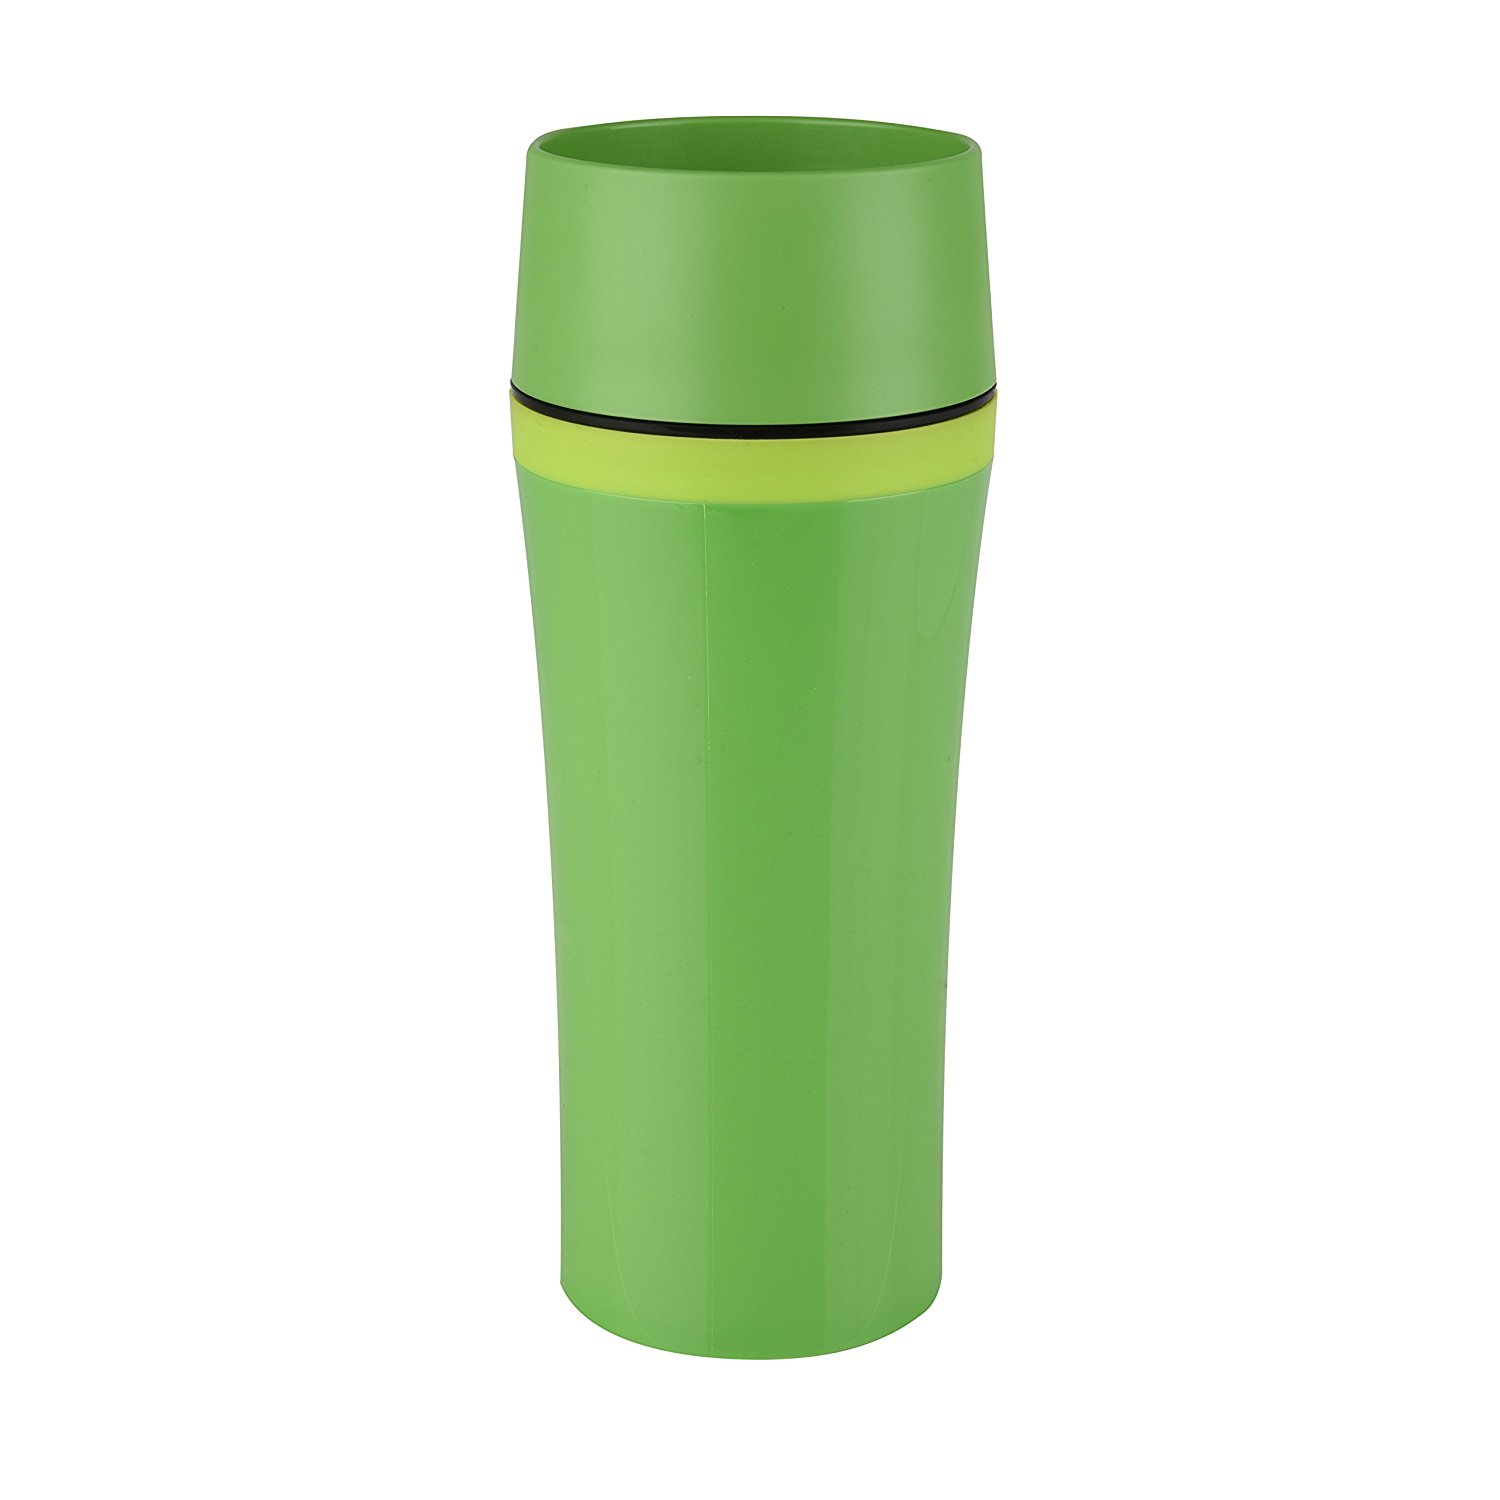 Termohrnek TRAVEL MUG FUN Quick press 360 ml zelený - Emsa